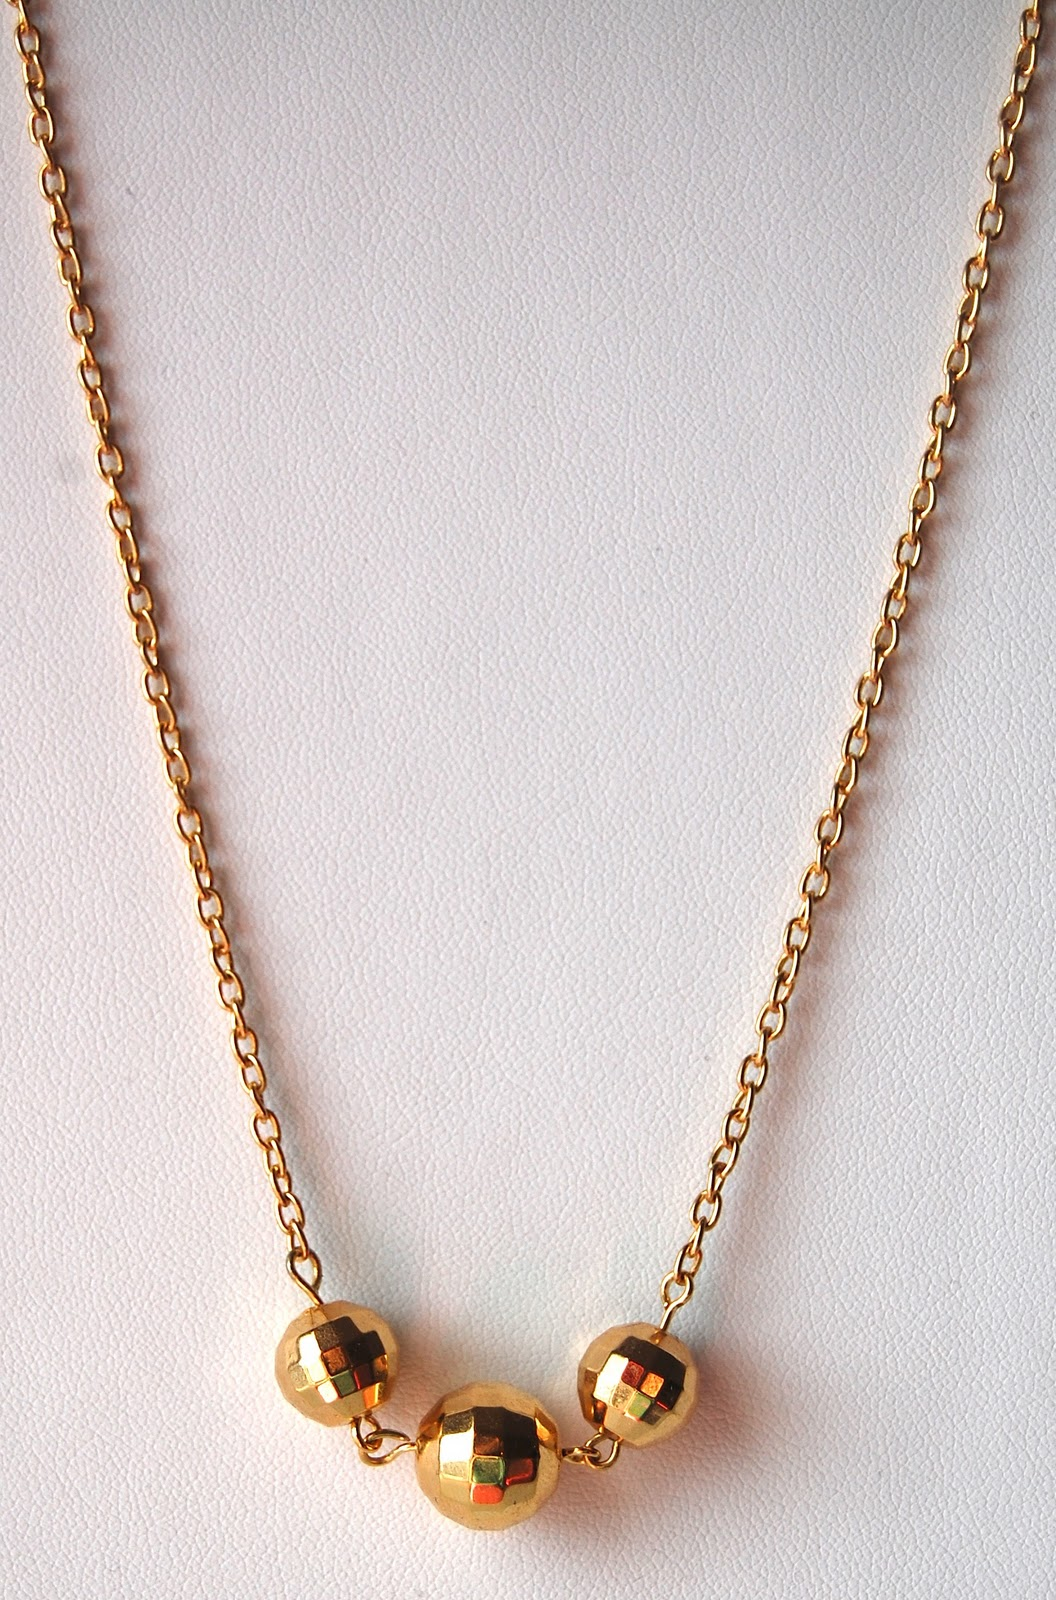 sellzcutethings disco necklace